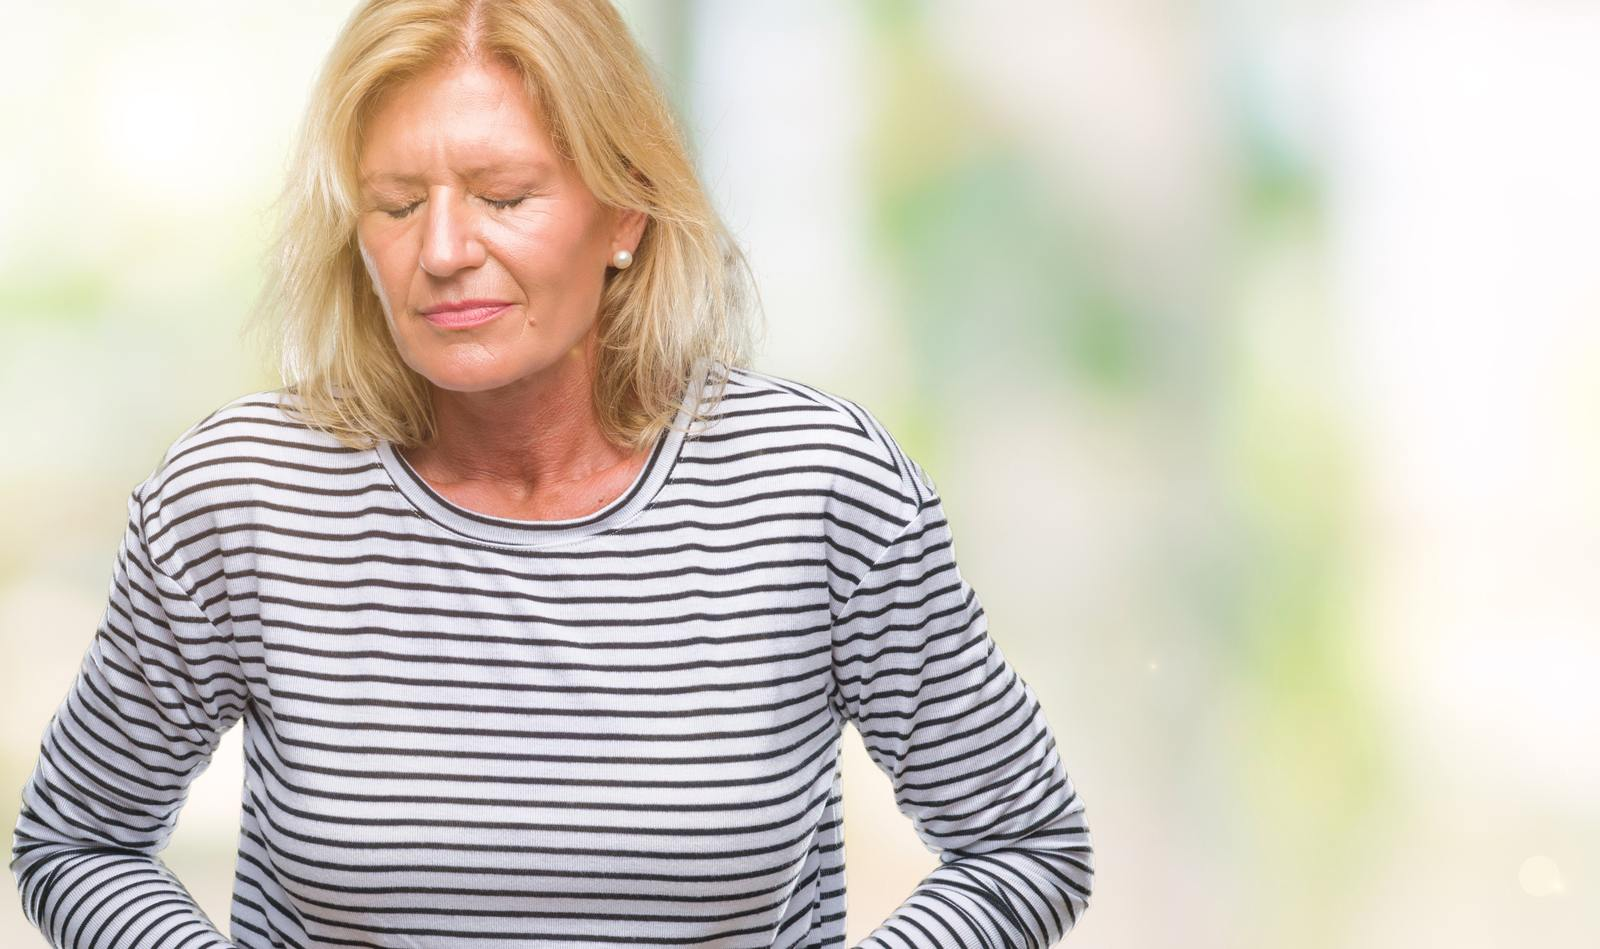 dolore alle ovaie in menopausa cause